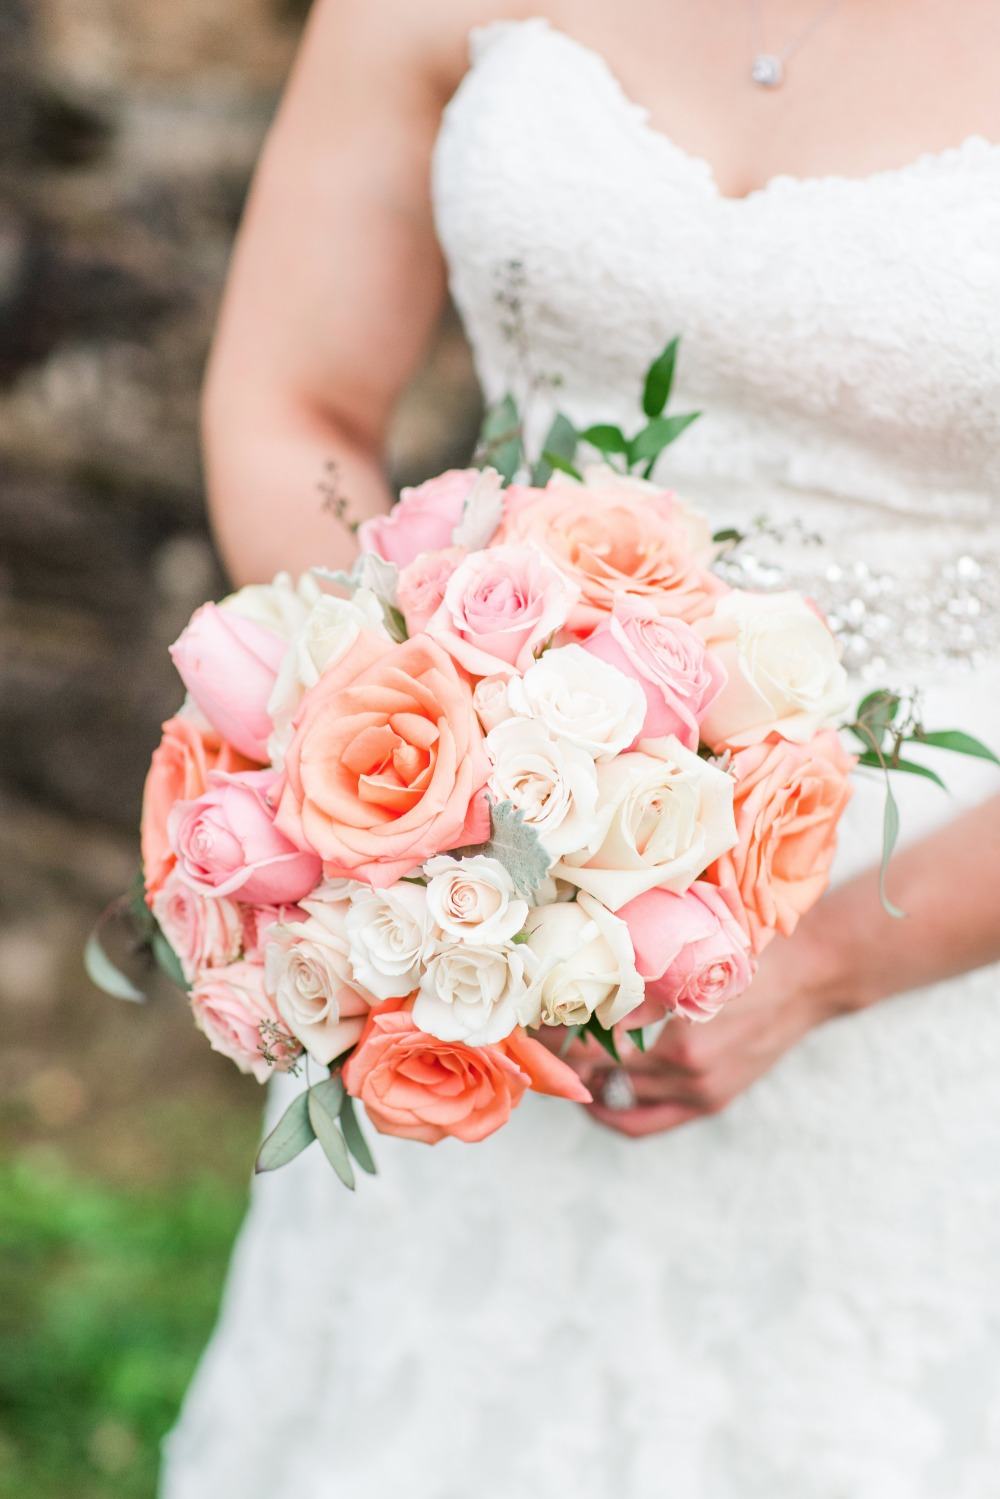 Pastel colored rose bouquet